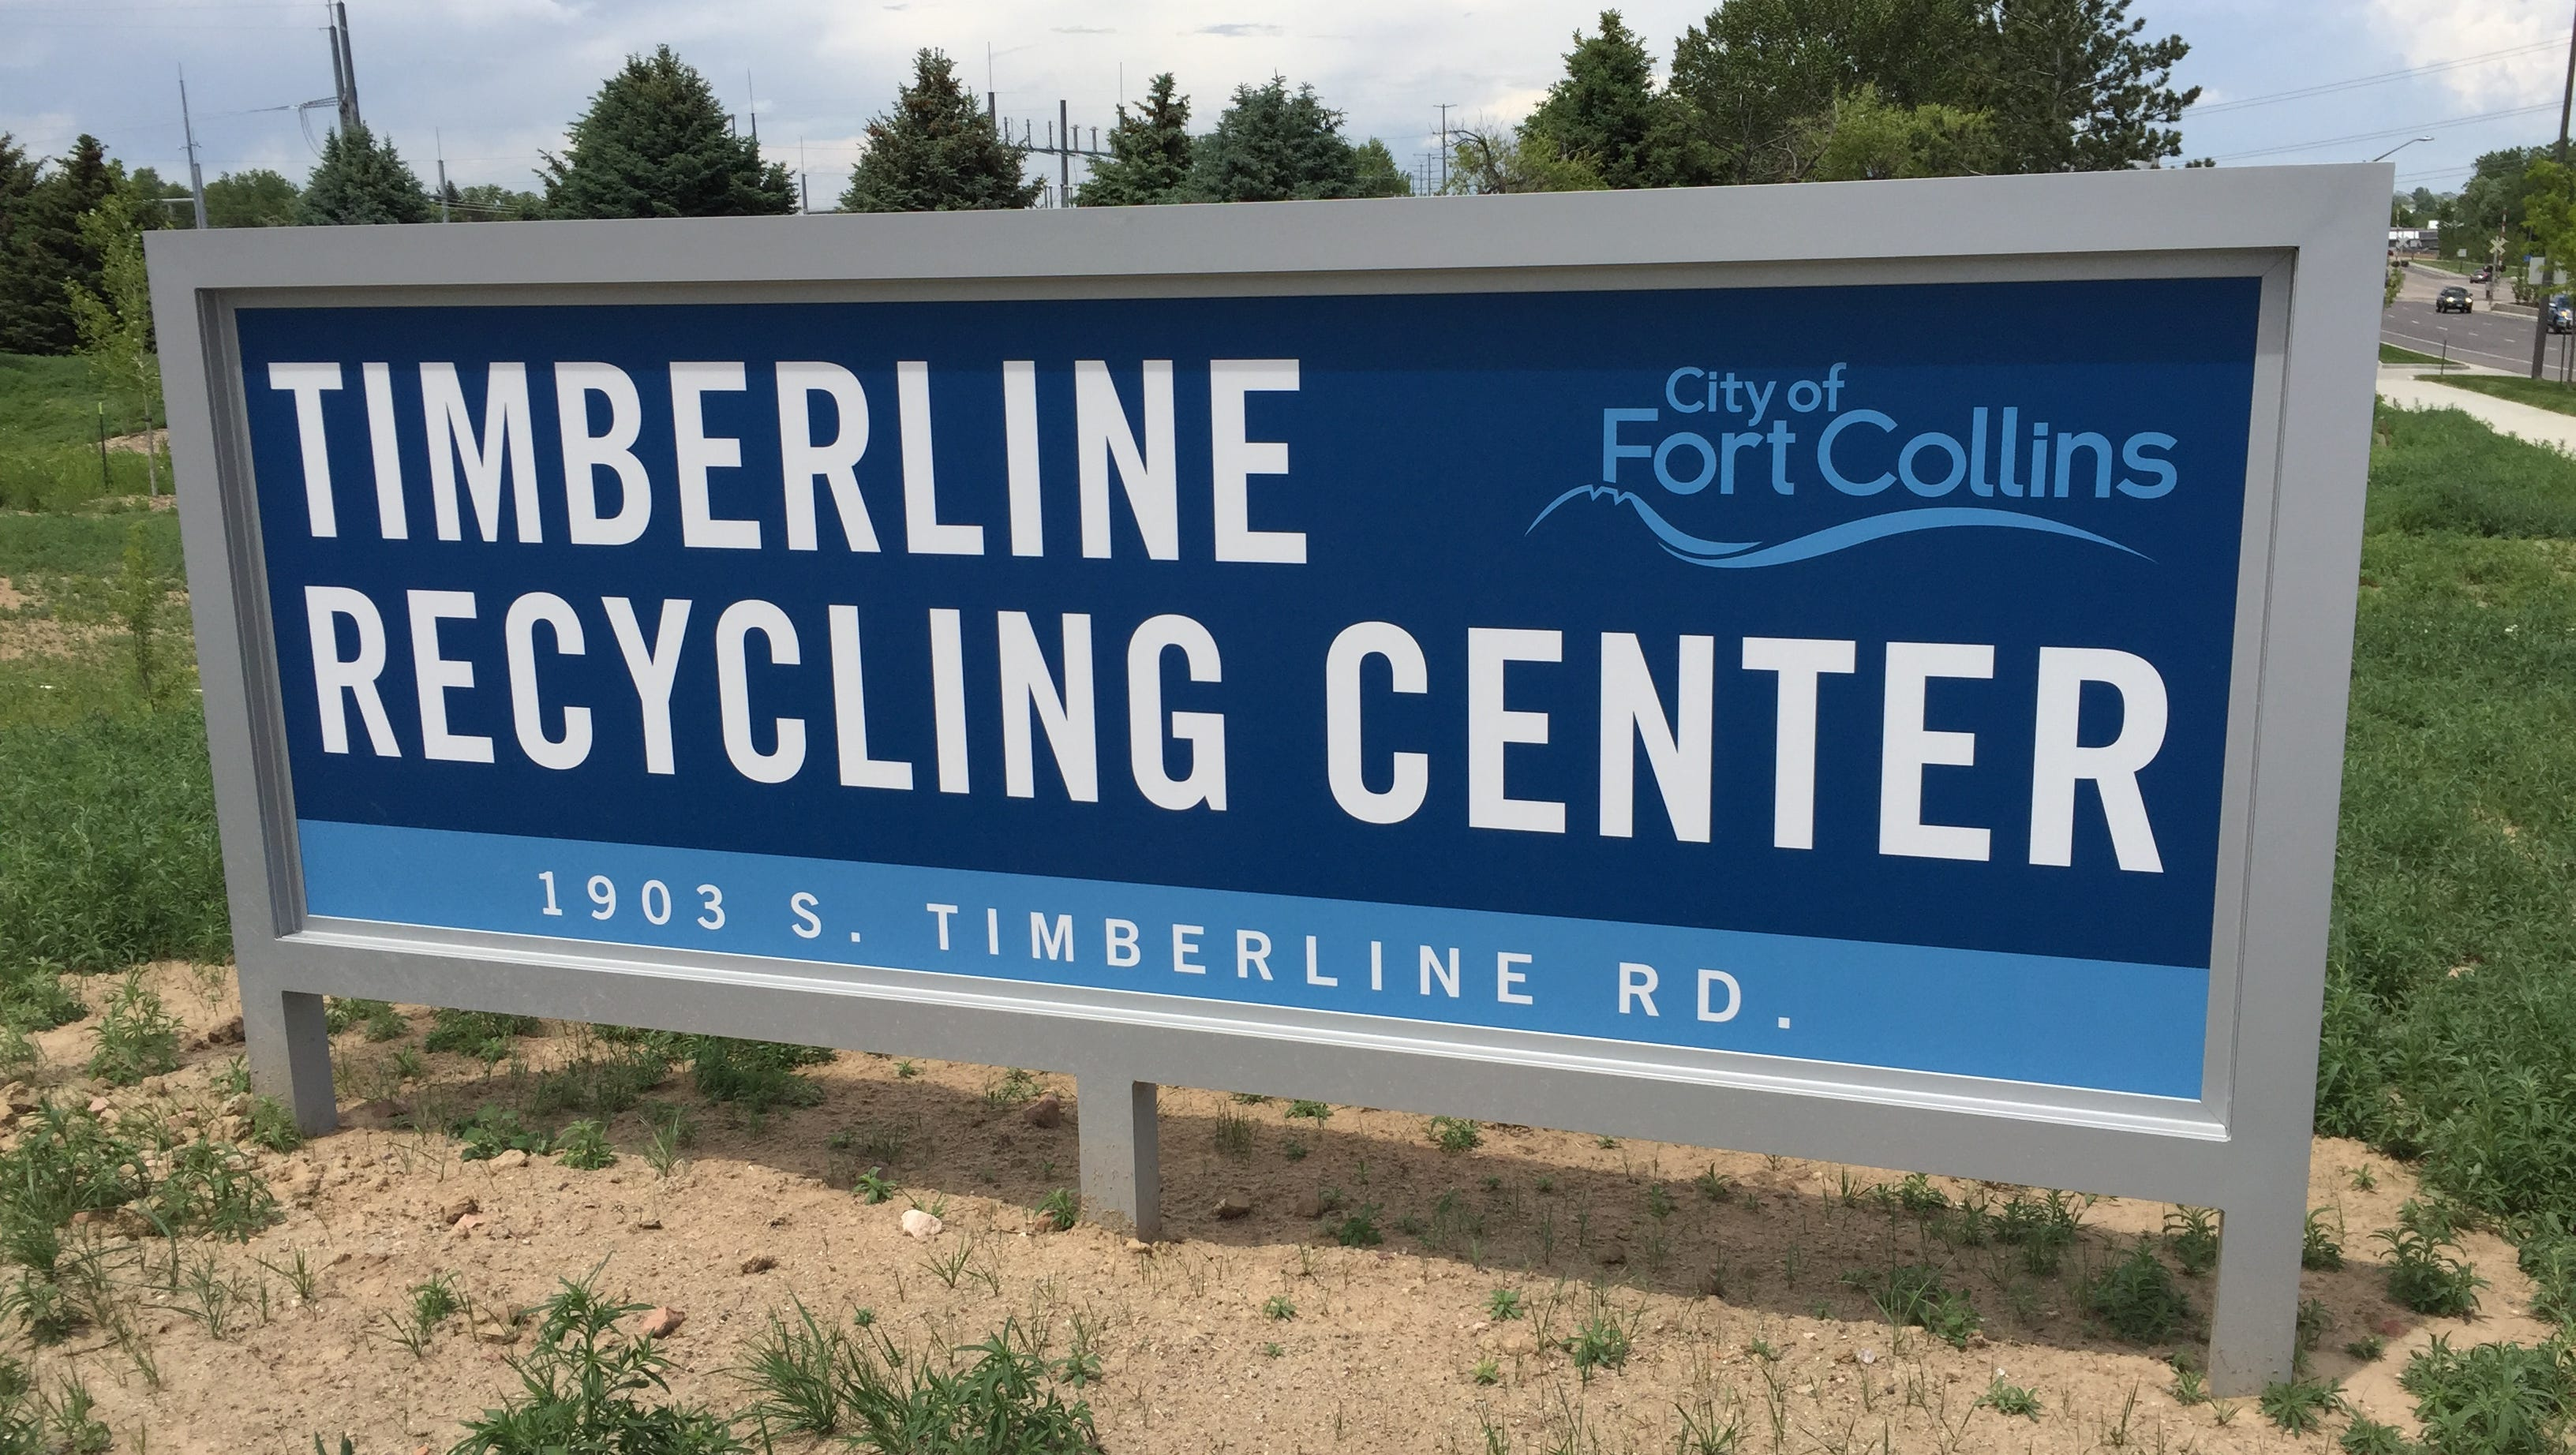 Recycle Your Beds Buckets And Books And Other Hard To Recycle Items In Fort Collins